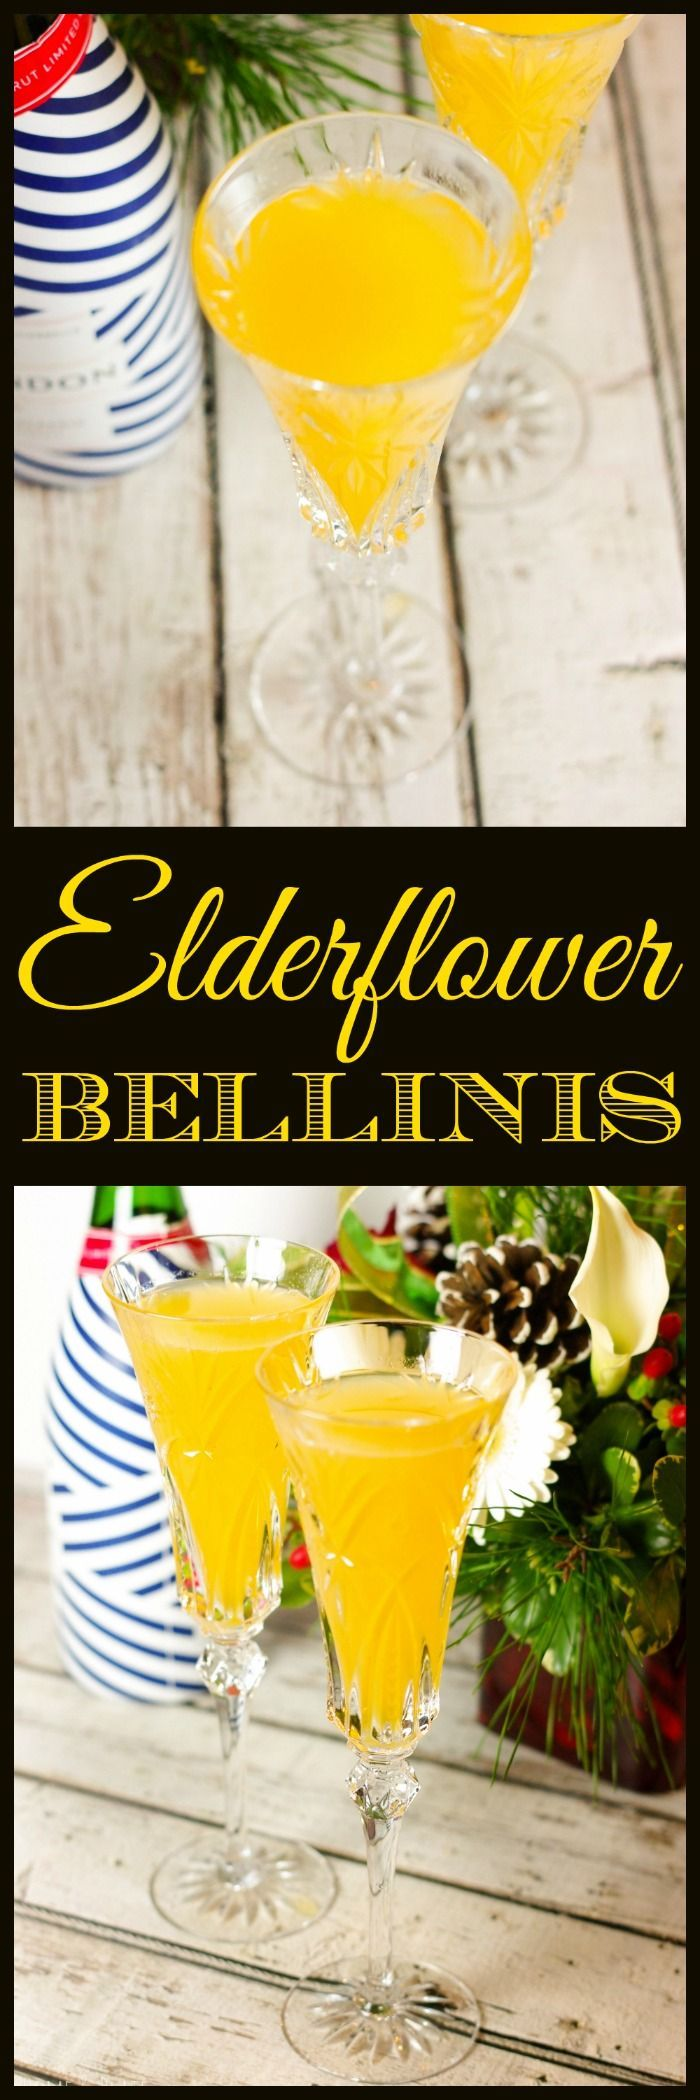 Elderflower Bellinis | www.homeandplate.com | For this peachy favorite, Elderflower liqueur is the star of the show. It's the perfect twist for this classic cocktail.